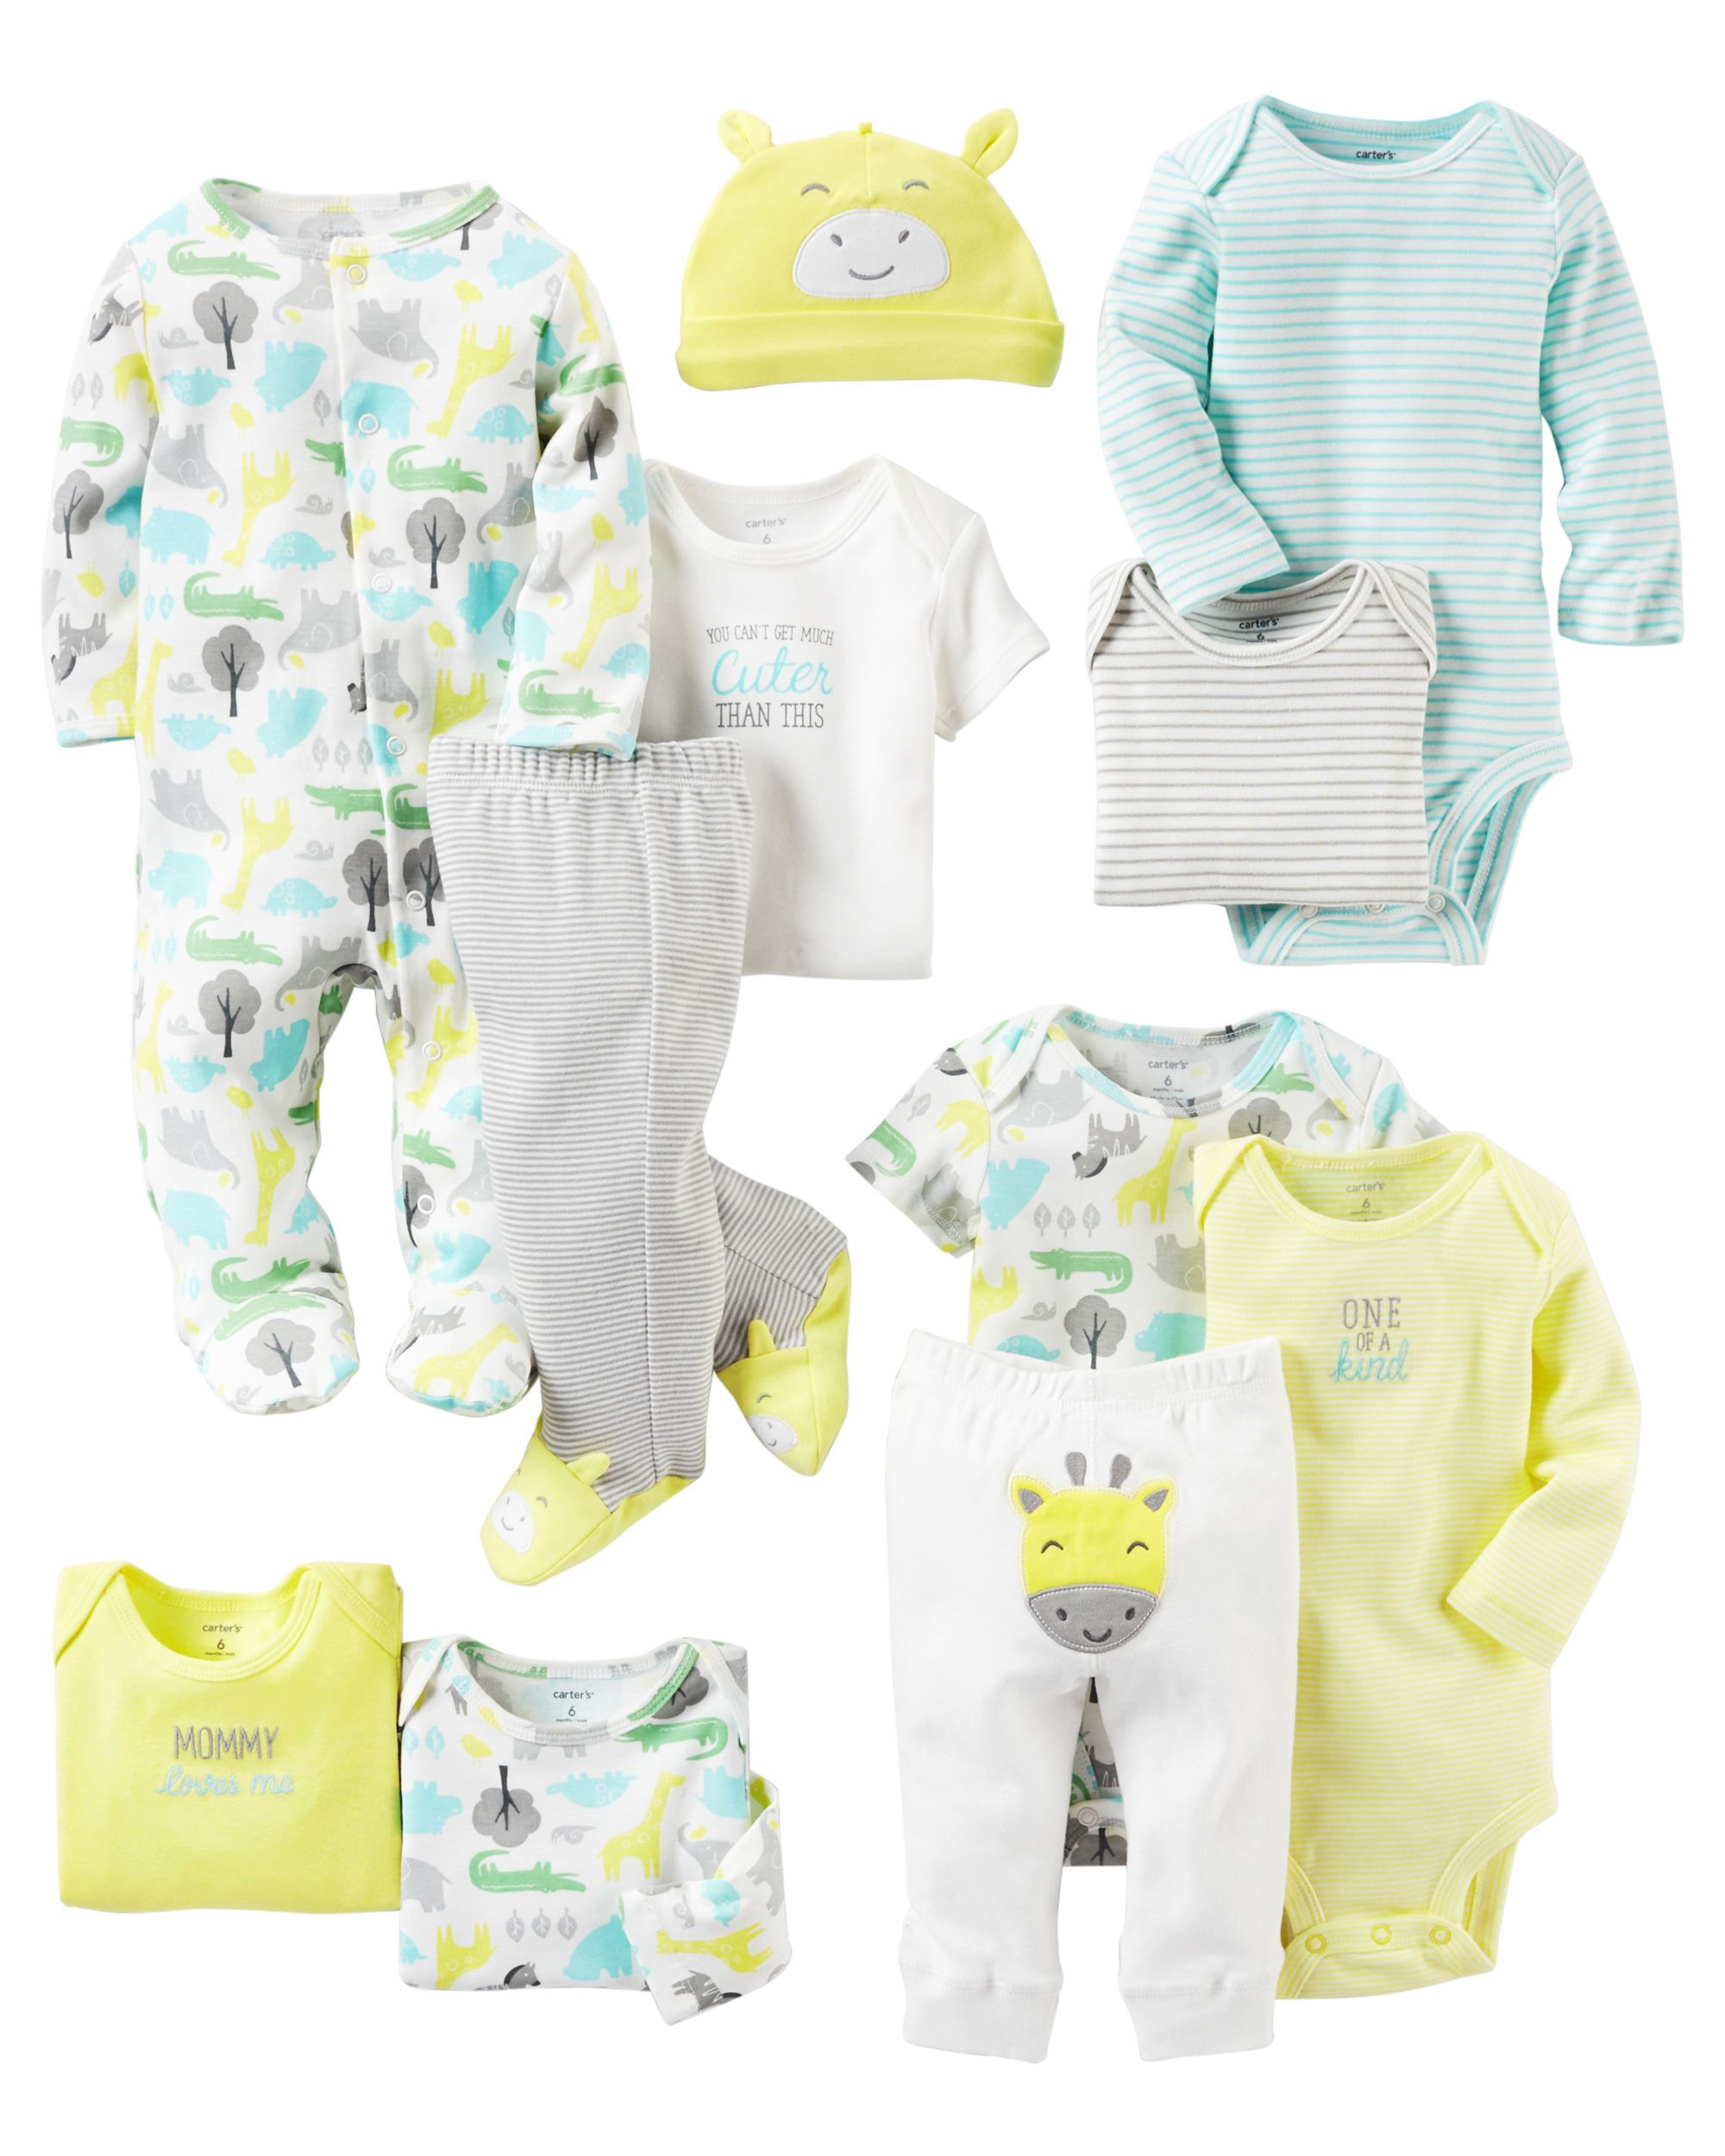 f9ce3f222dbe7 Baby Neutral CARMAY26F16 | Carters.com | It's a Boy | Carters baby ...